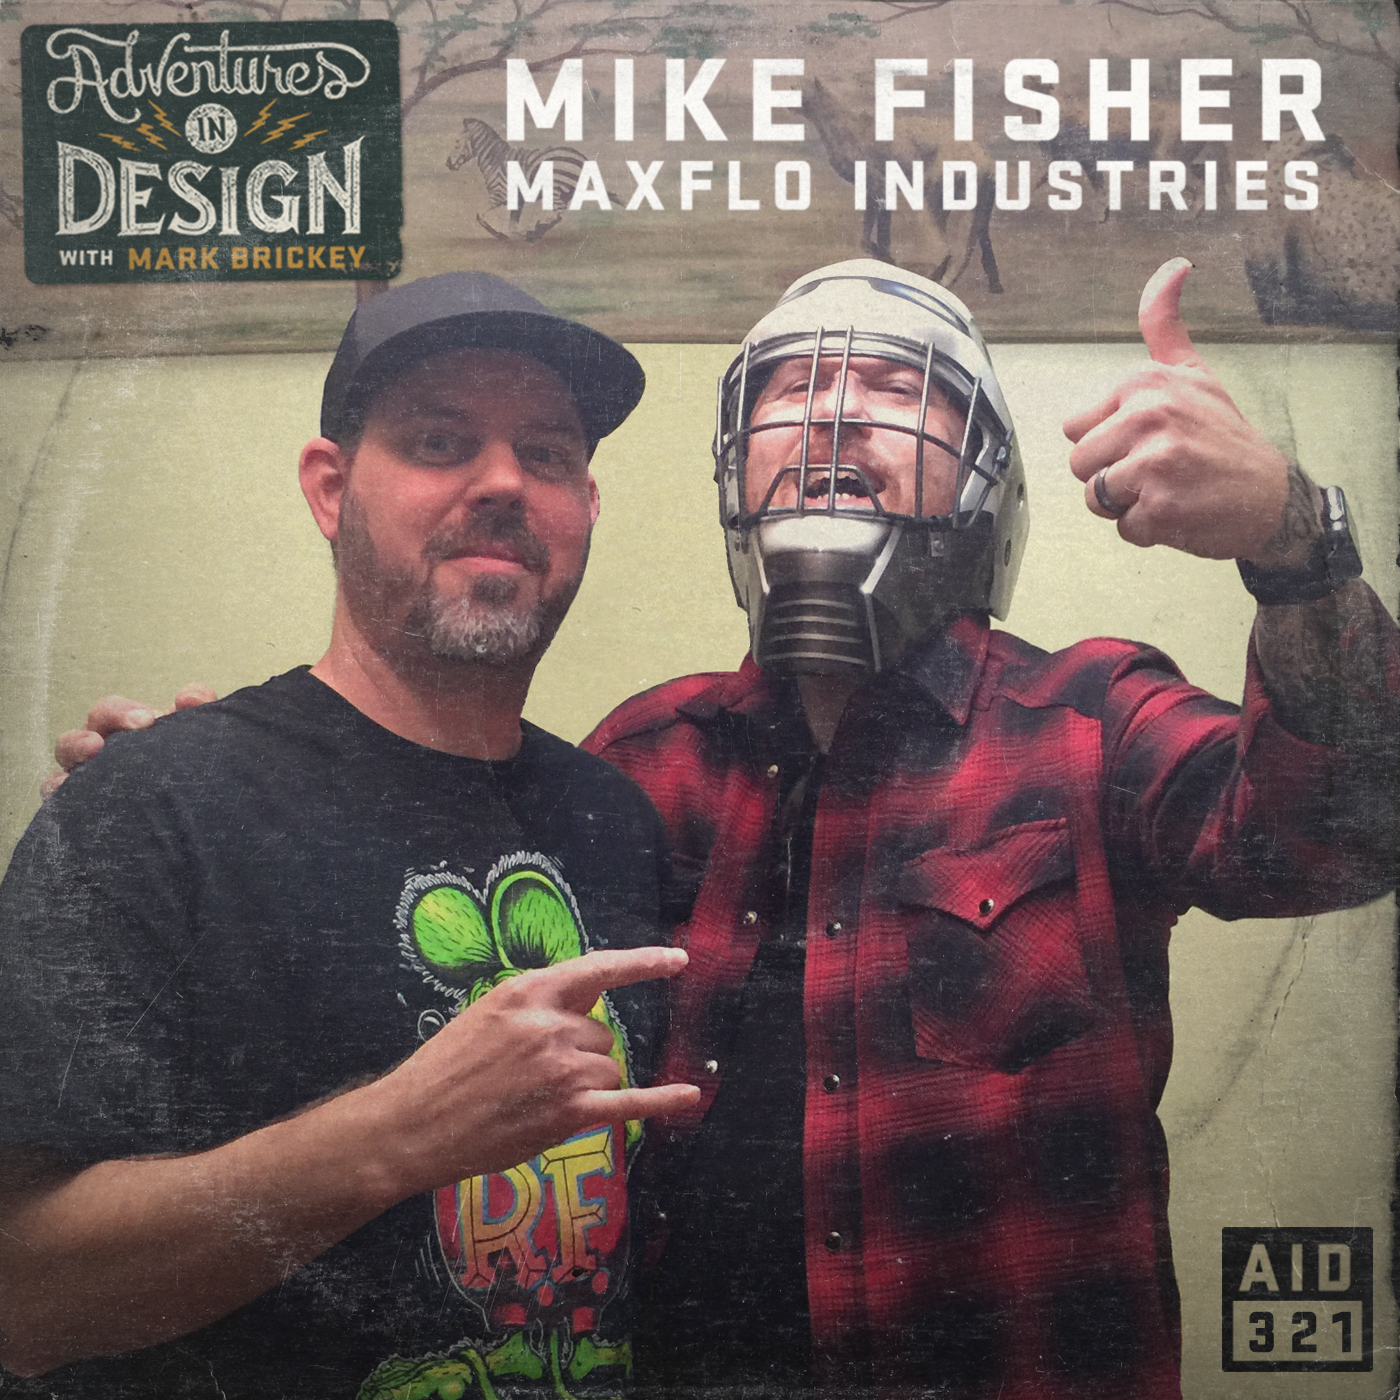 Episode 321 - Roadrunner of The Year and Mike Fisher of Maxflo Industries